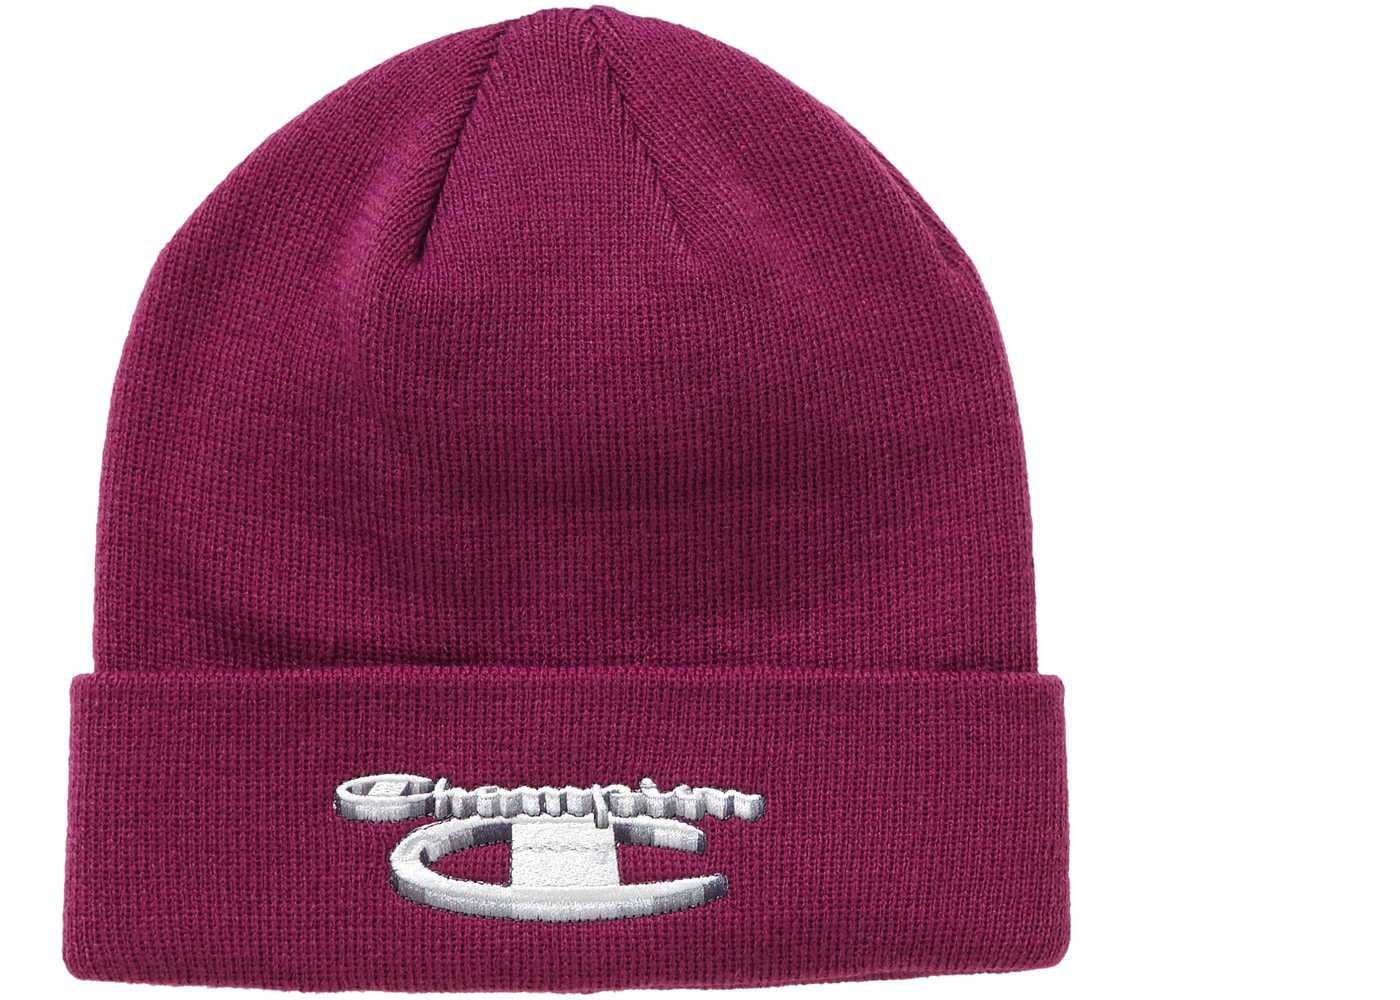 8c9a5c7e Supreme Champion 3D Metallic Beanie Bright Purple. Champion 3D Metallic